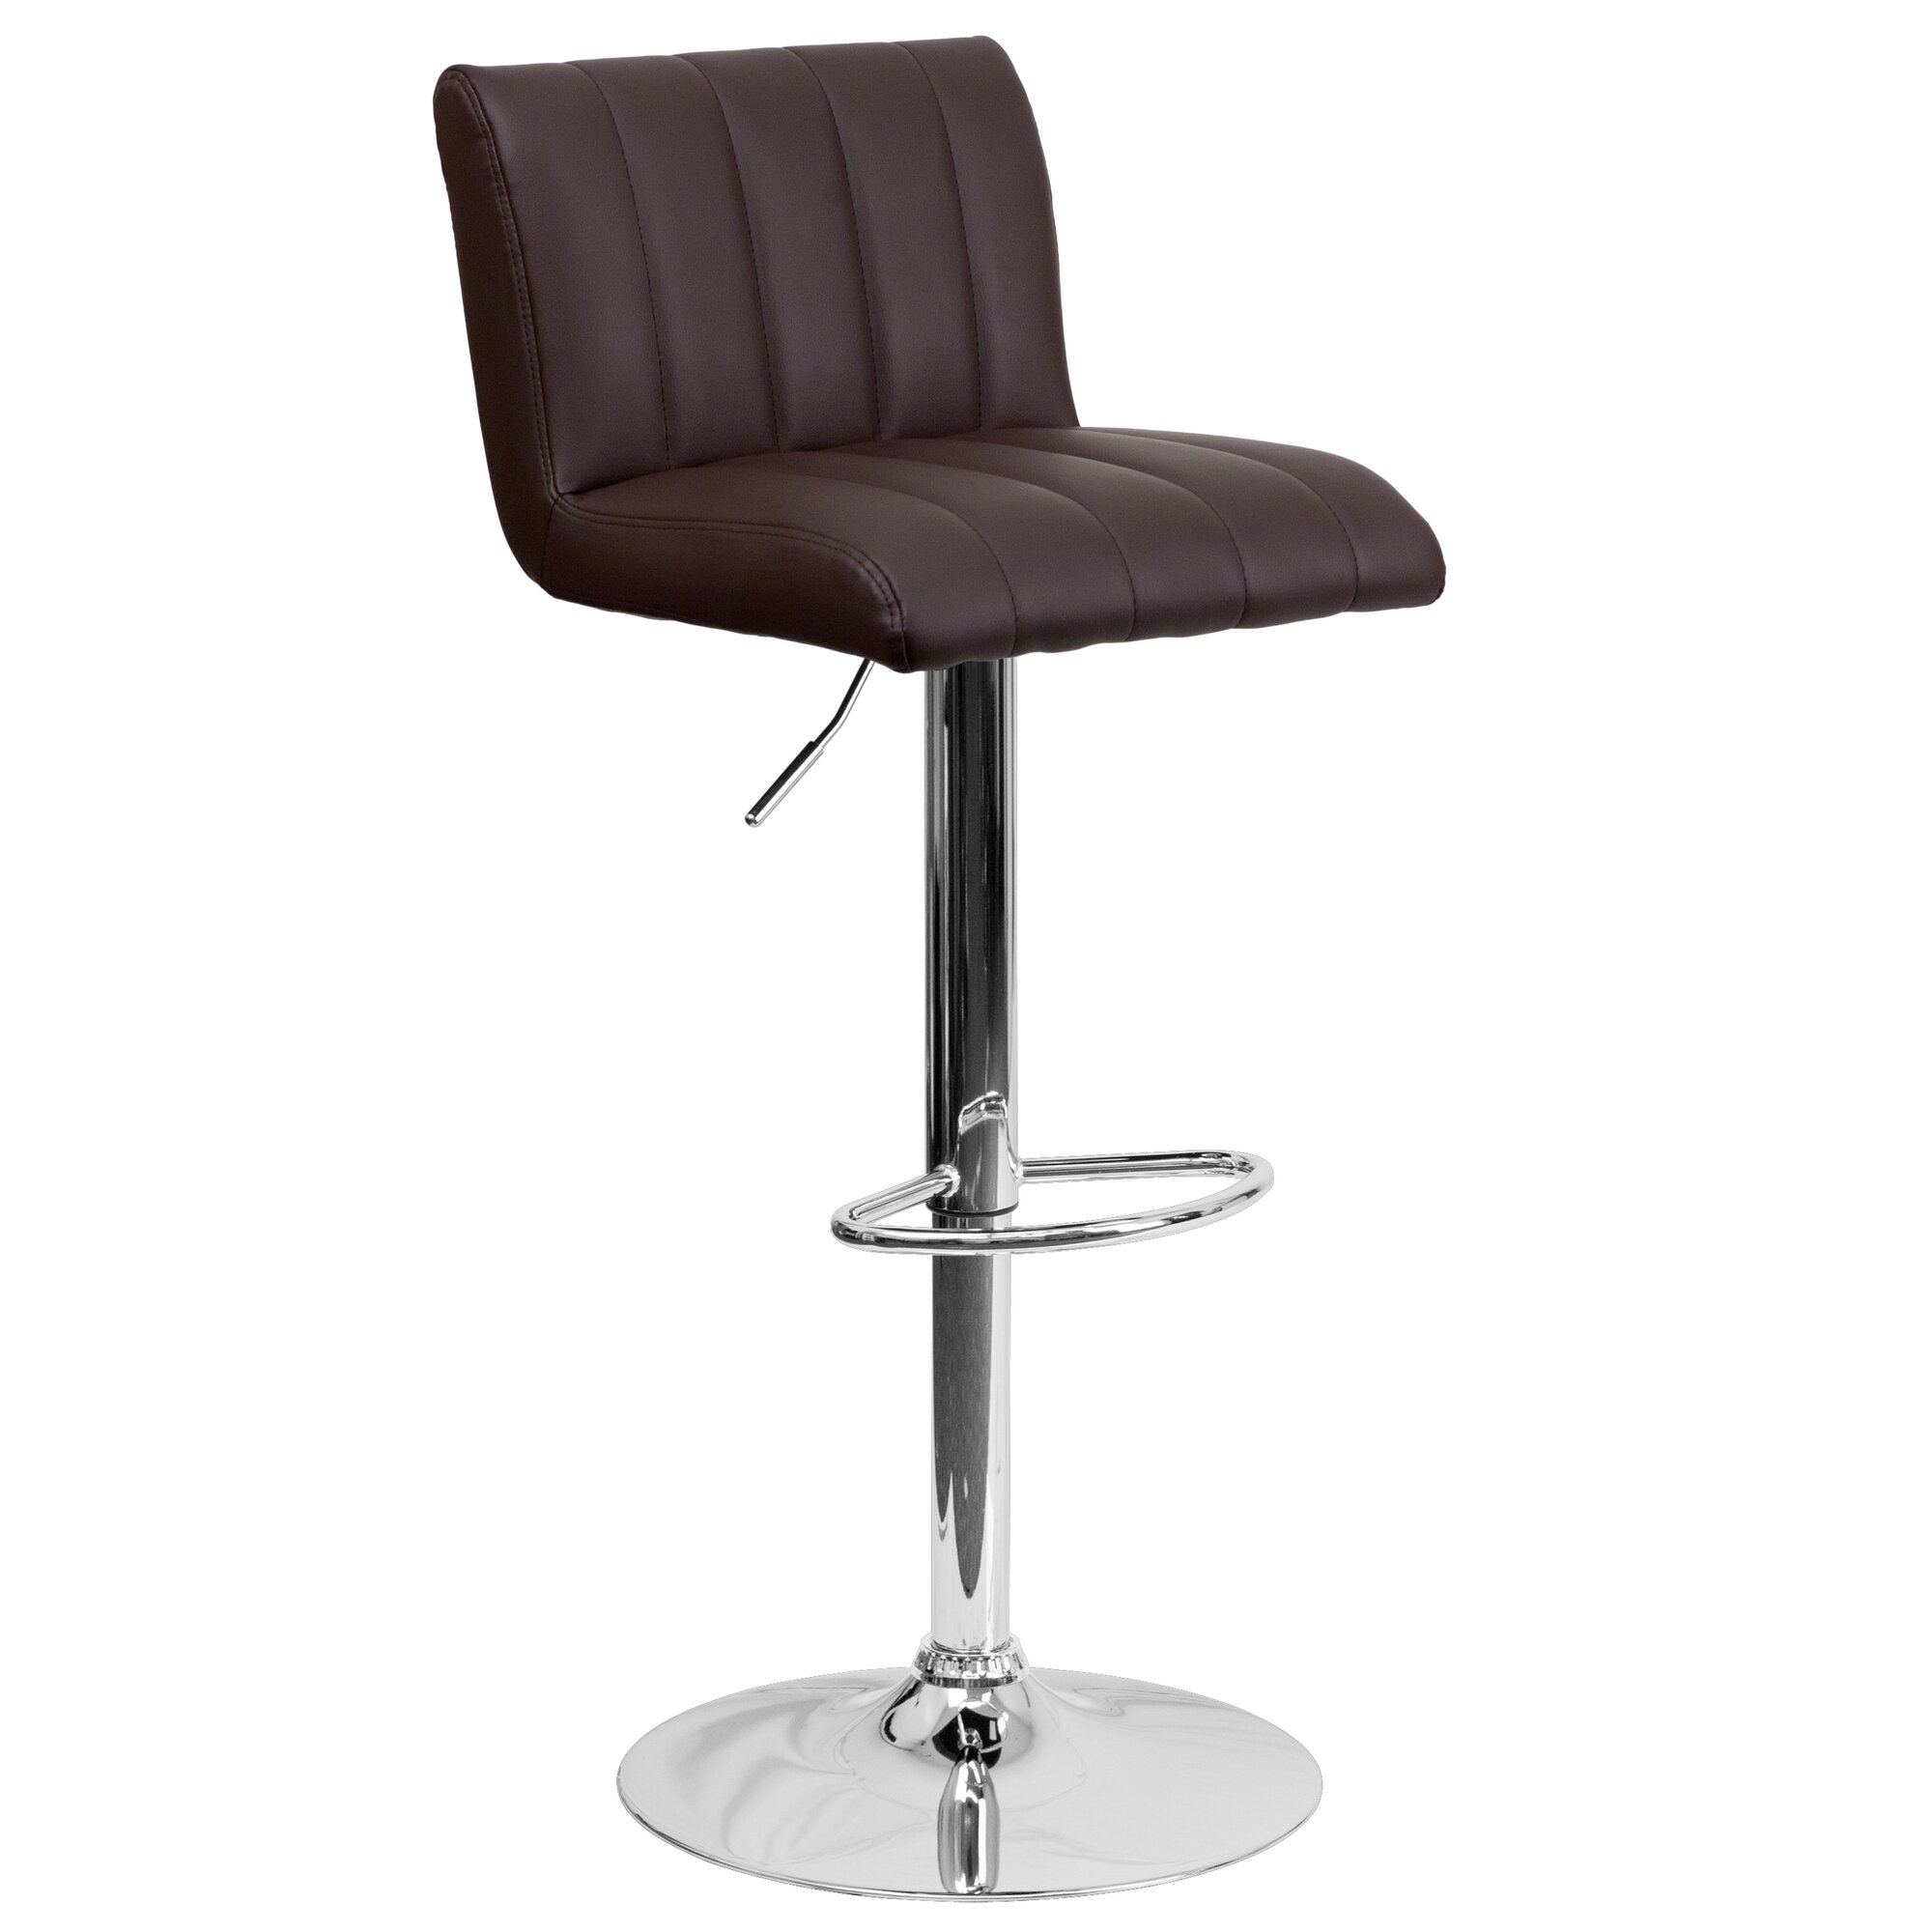 Lovely bar stool foot rail protectors images - Bar height chair slipcovers ...